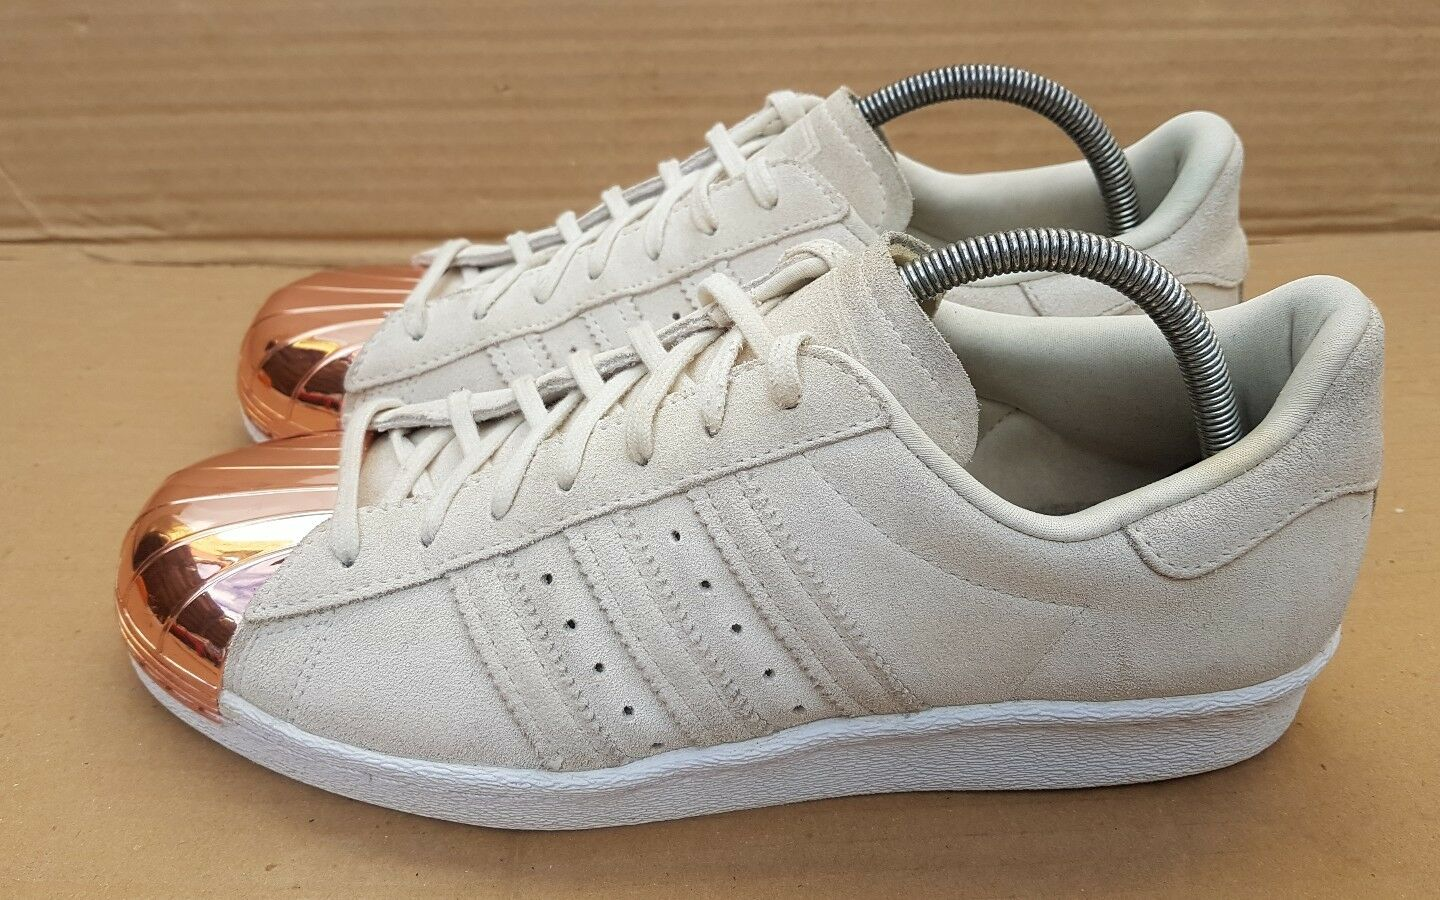 ADIDAS SUPERSTAR 80'S TRAINERS BEIGE SUEDE ROSE GOLD METAL TOE IN SIZE 7 UK